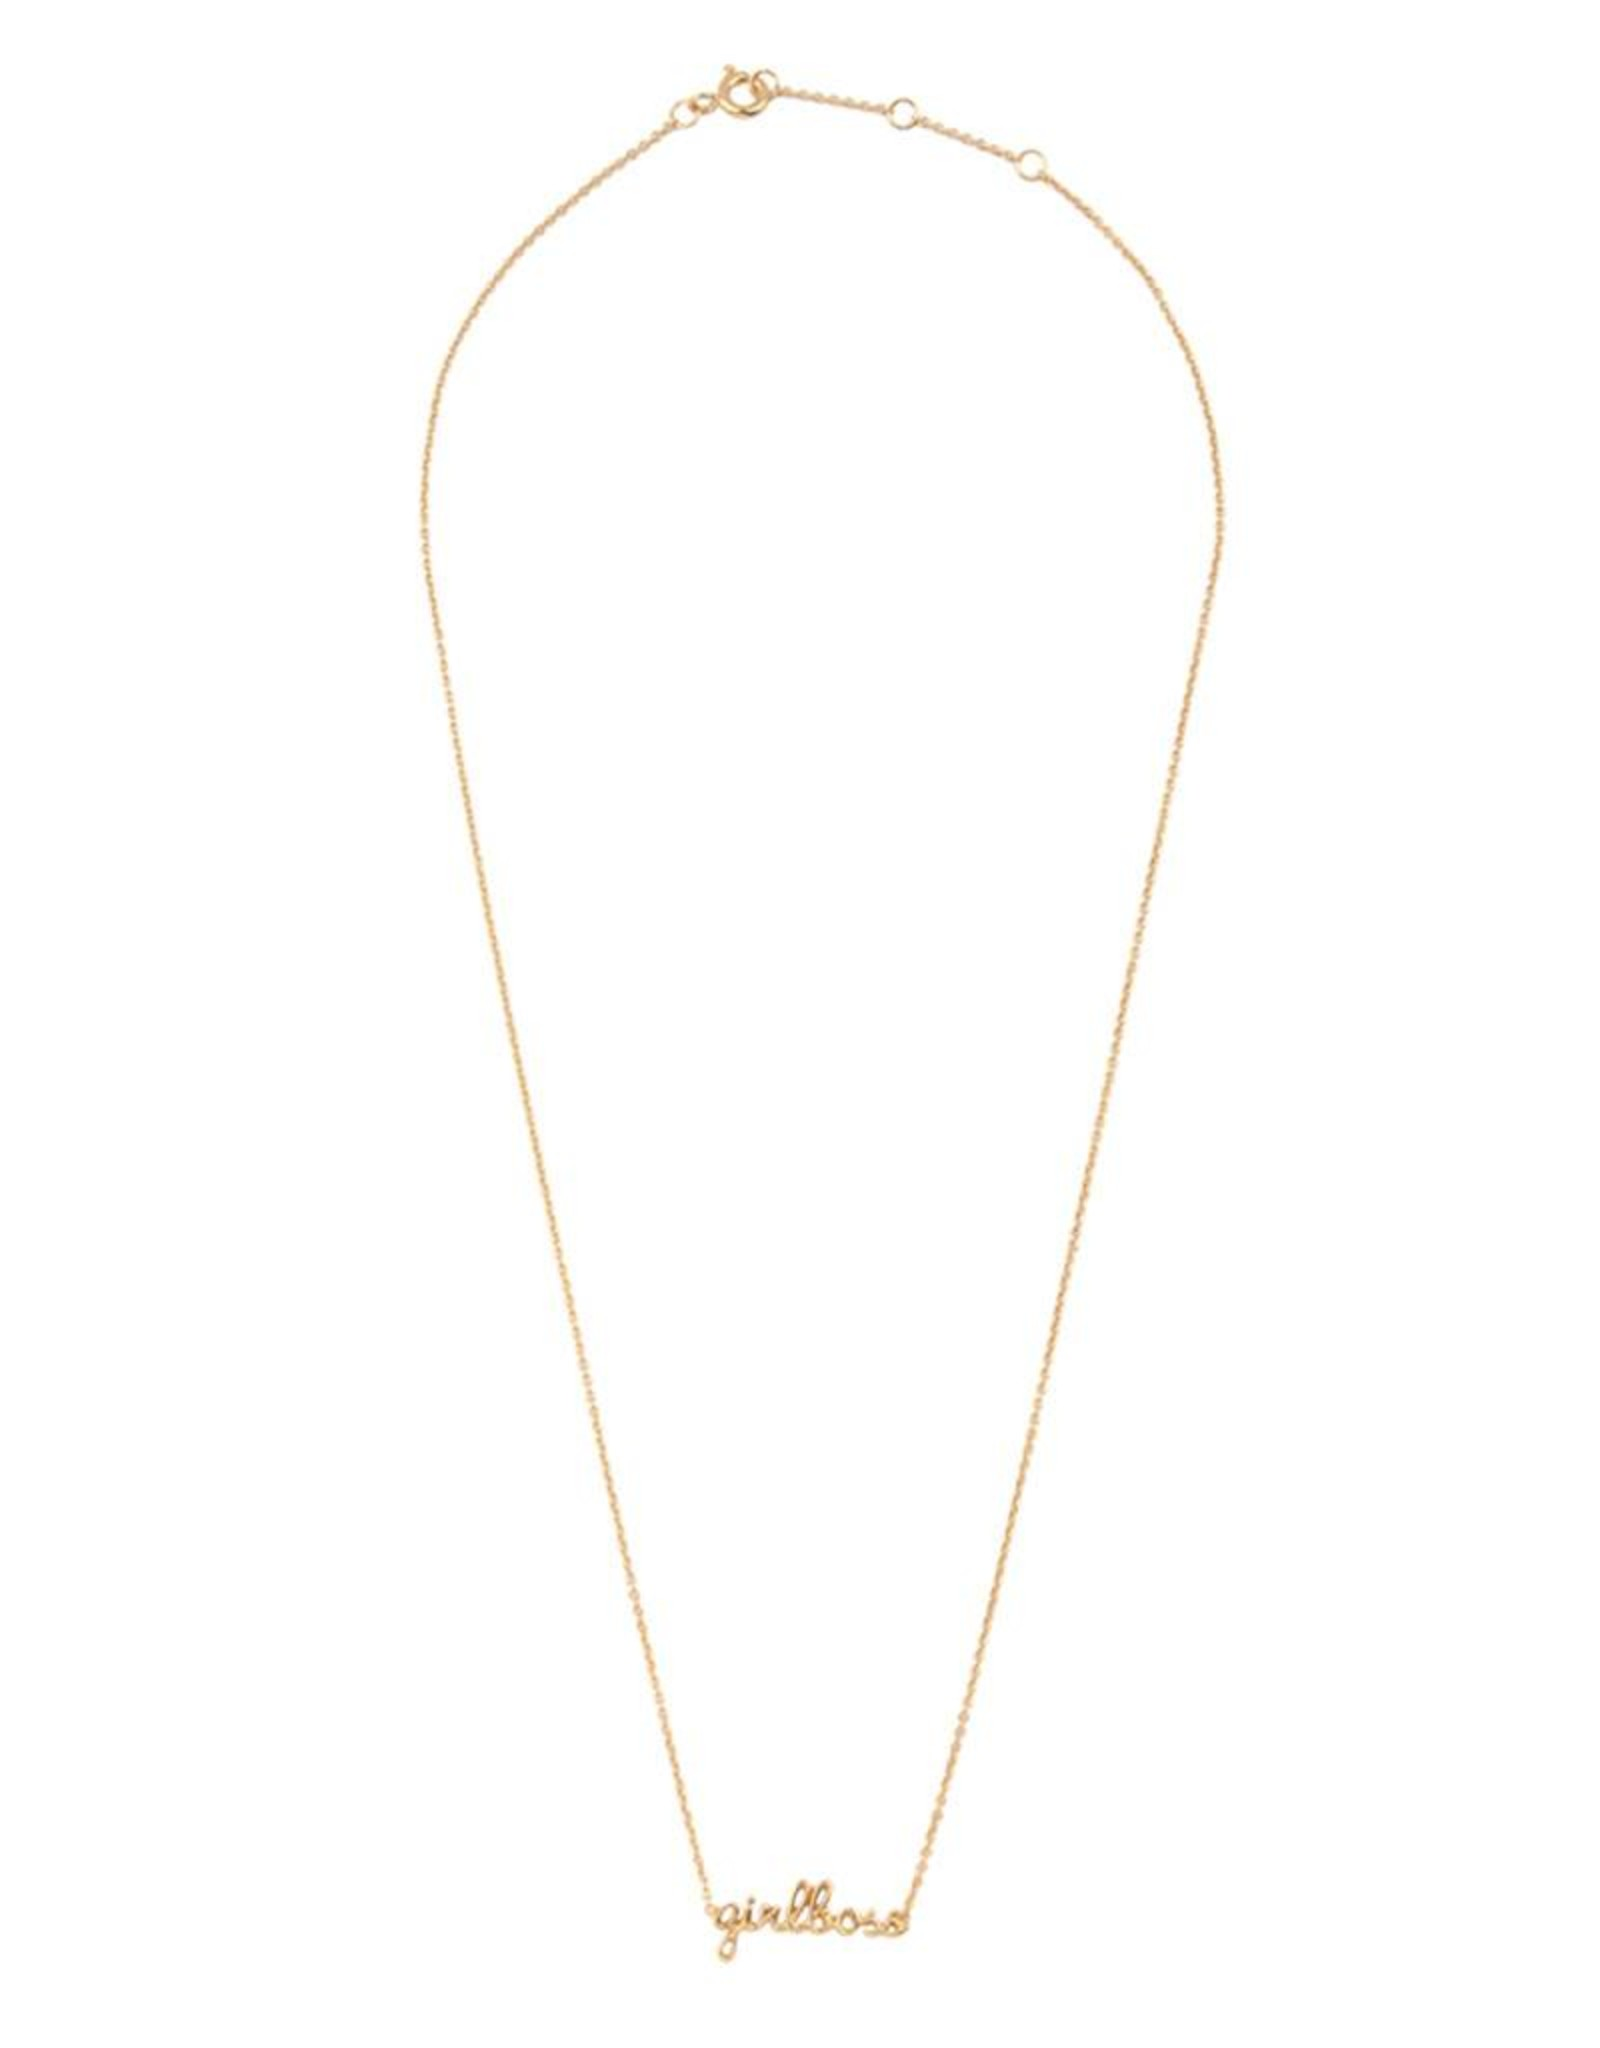 All the luck in the world Urban Necklace - Girlboss